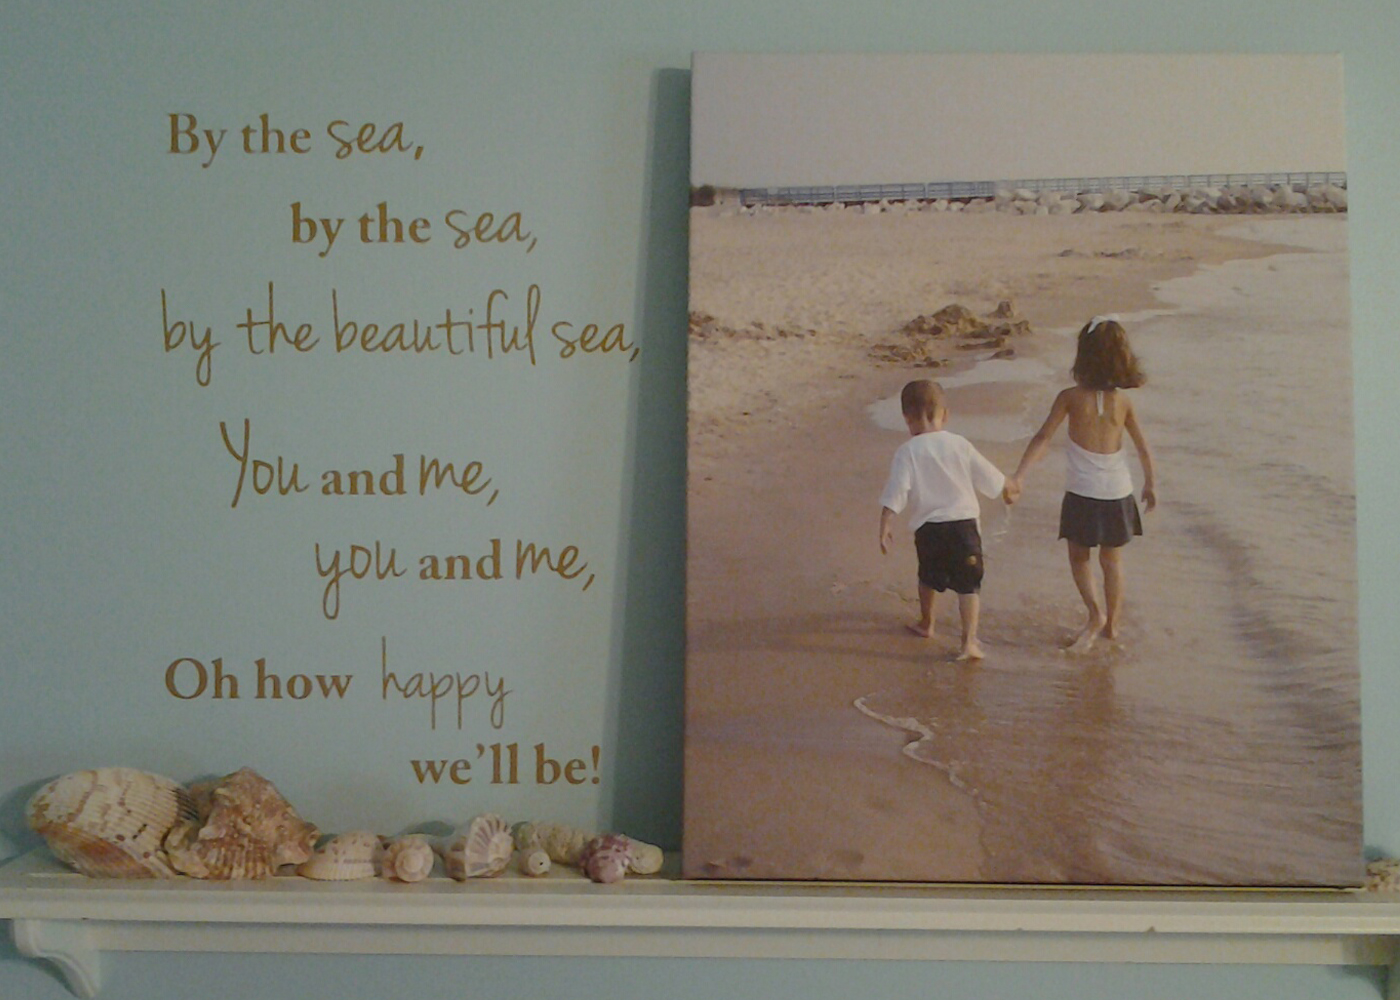 custom-wall-decal-quote-sticker-poem-by-wall-decor-plus-more.jpg